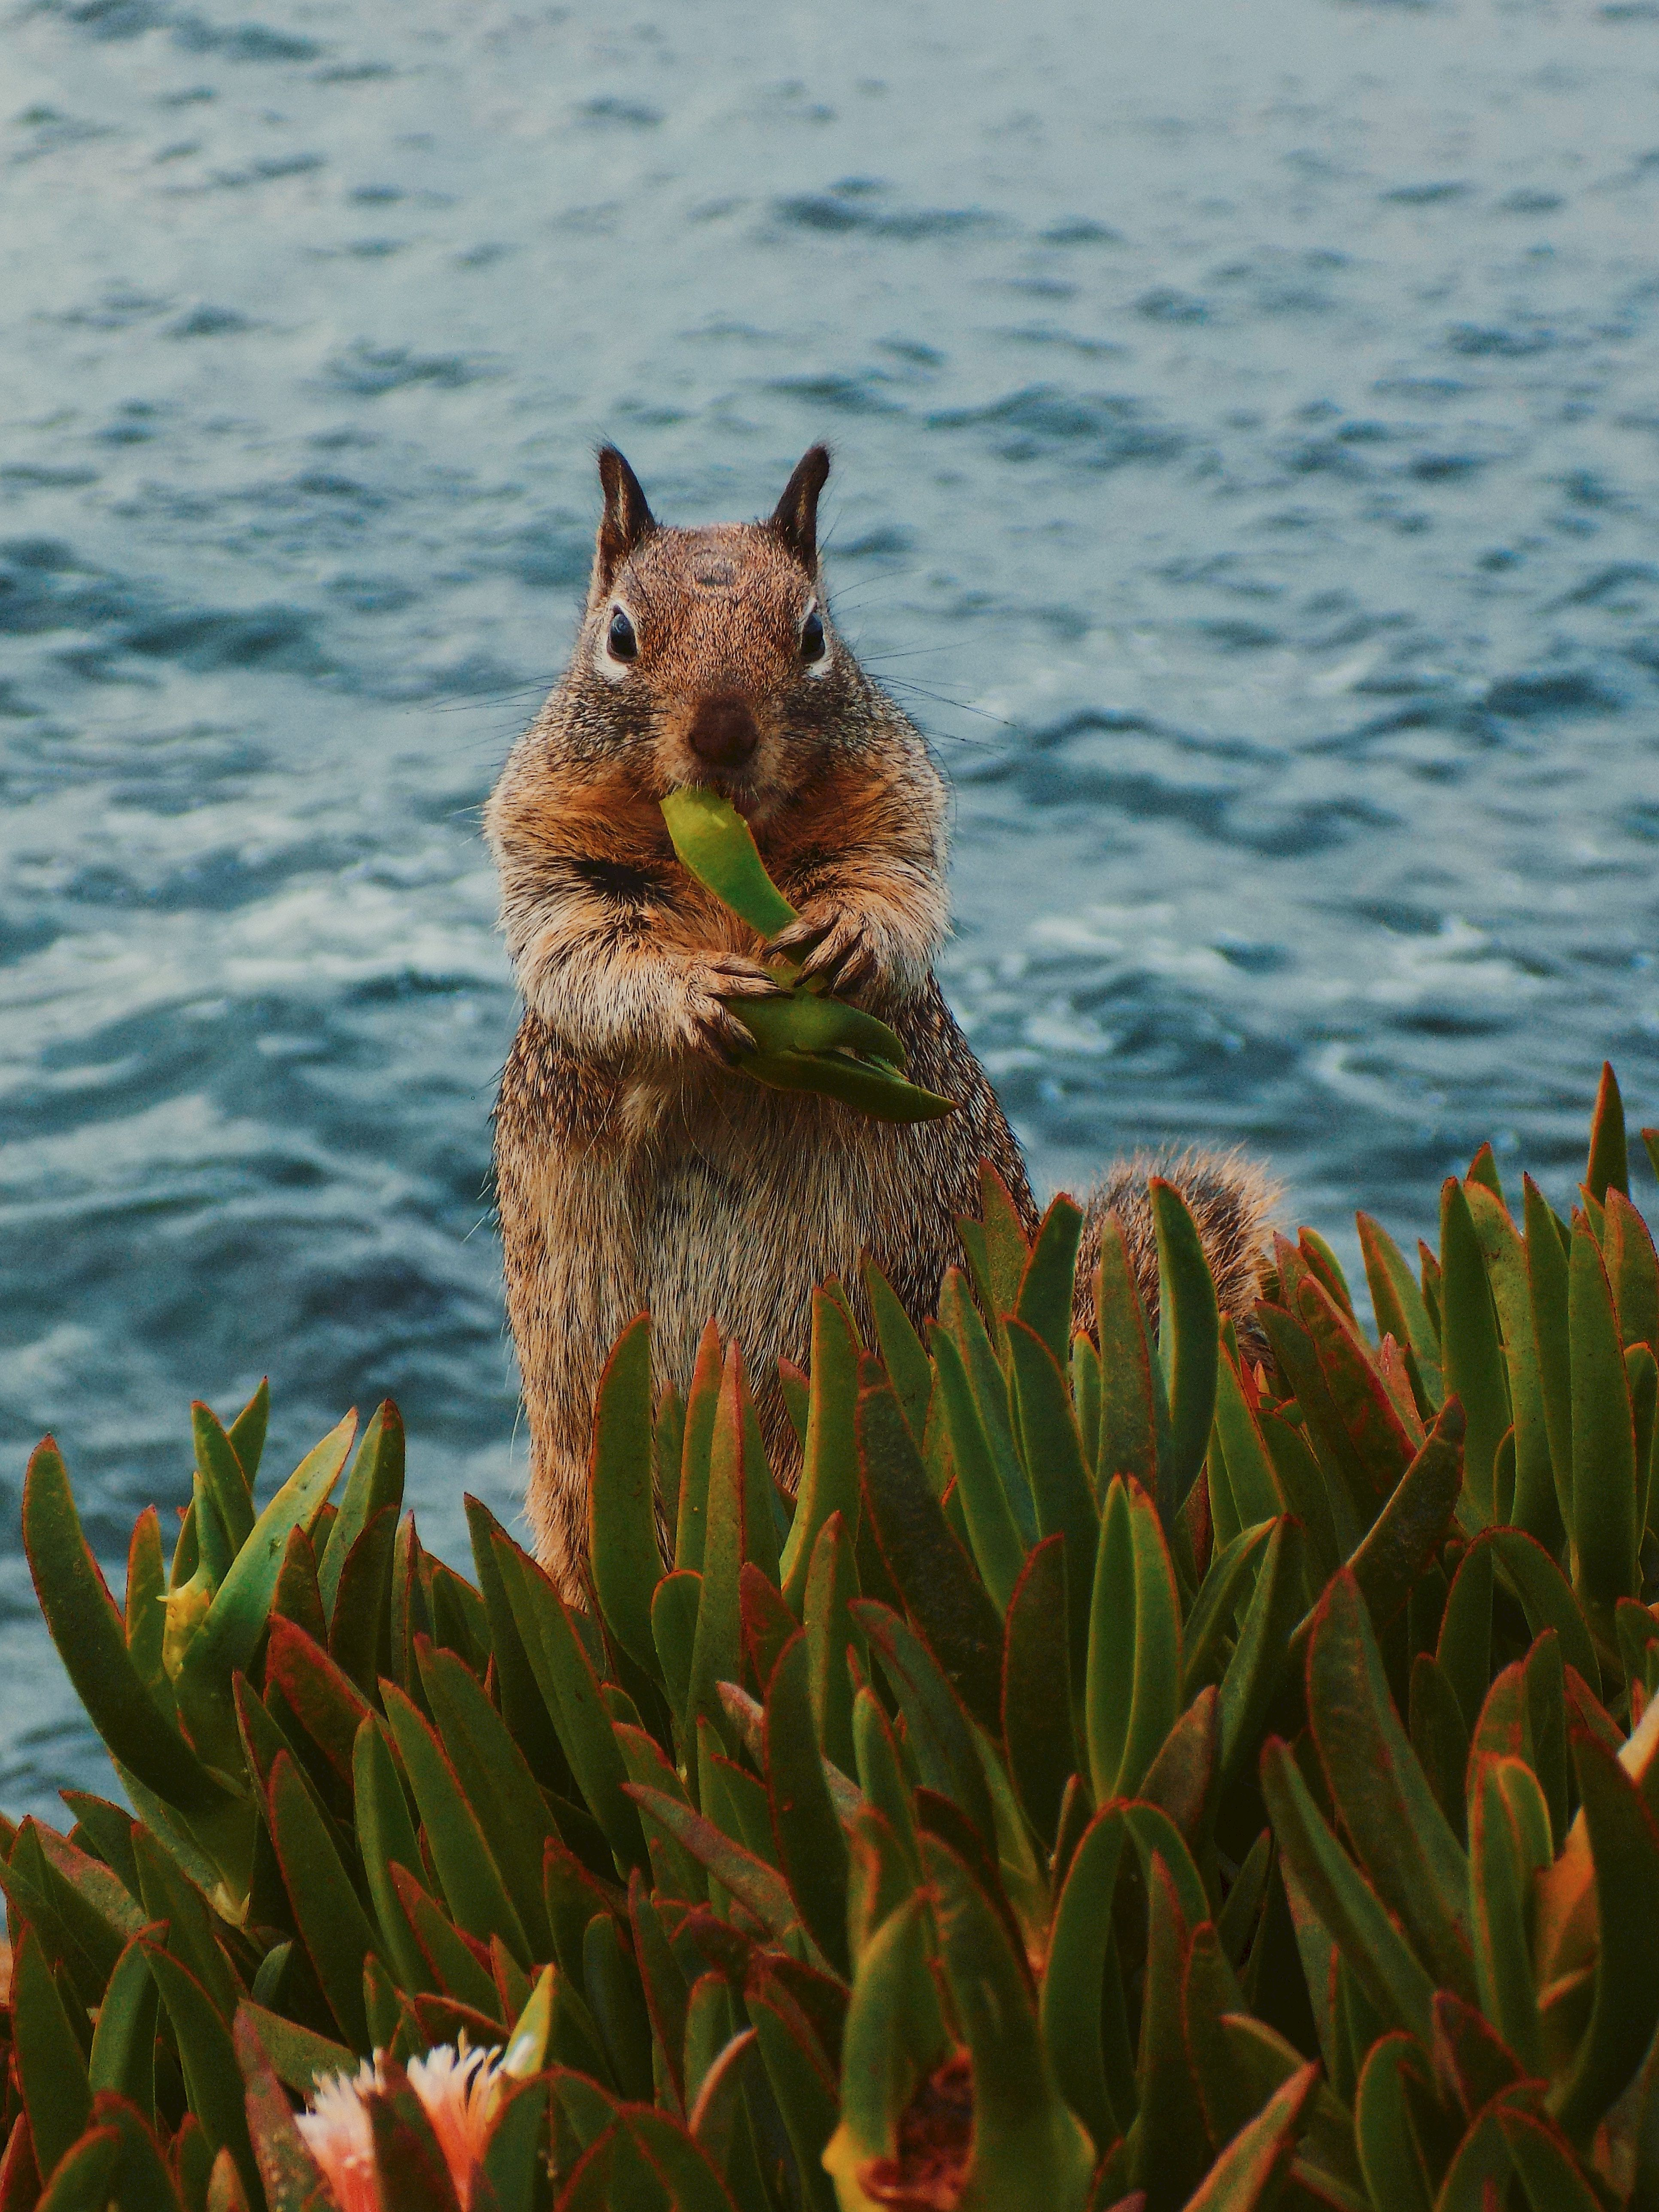 156459 download wallpaper Animals, Squirrel, Leaves, Animal, Wildlife, Food screensavers and pictures for free